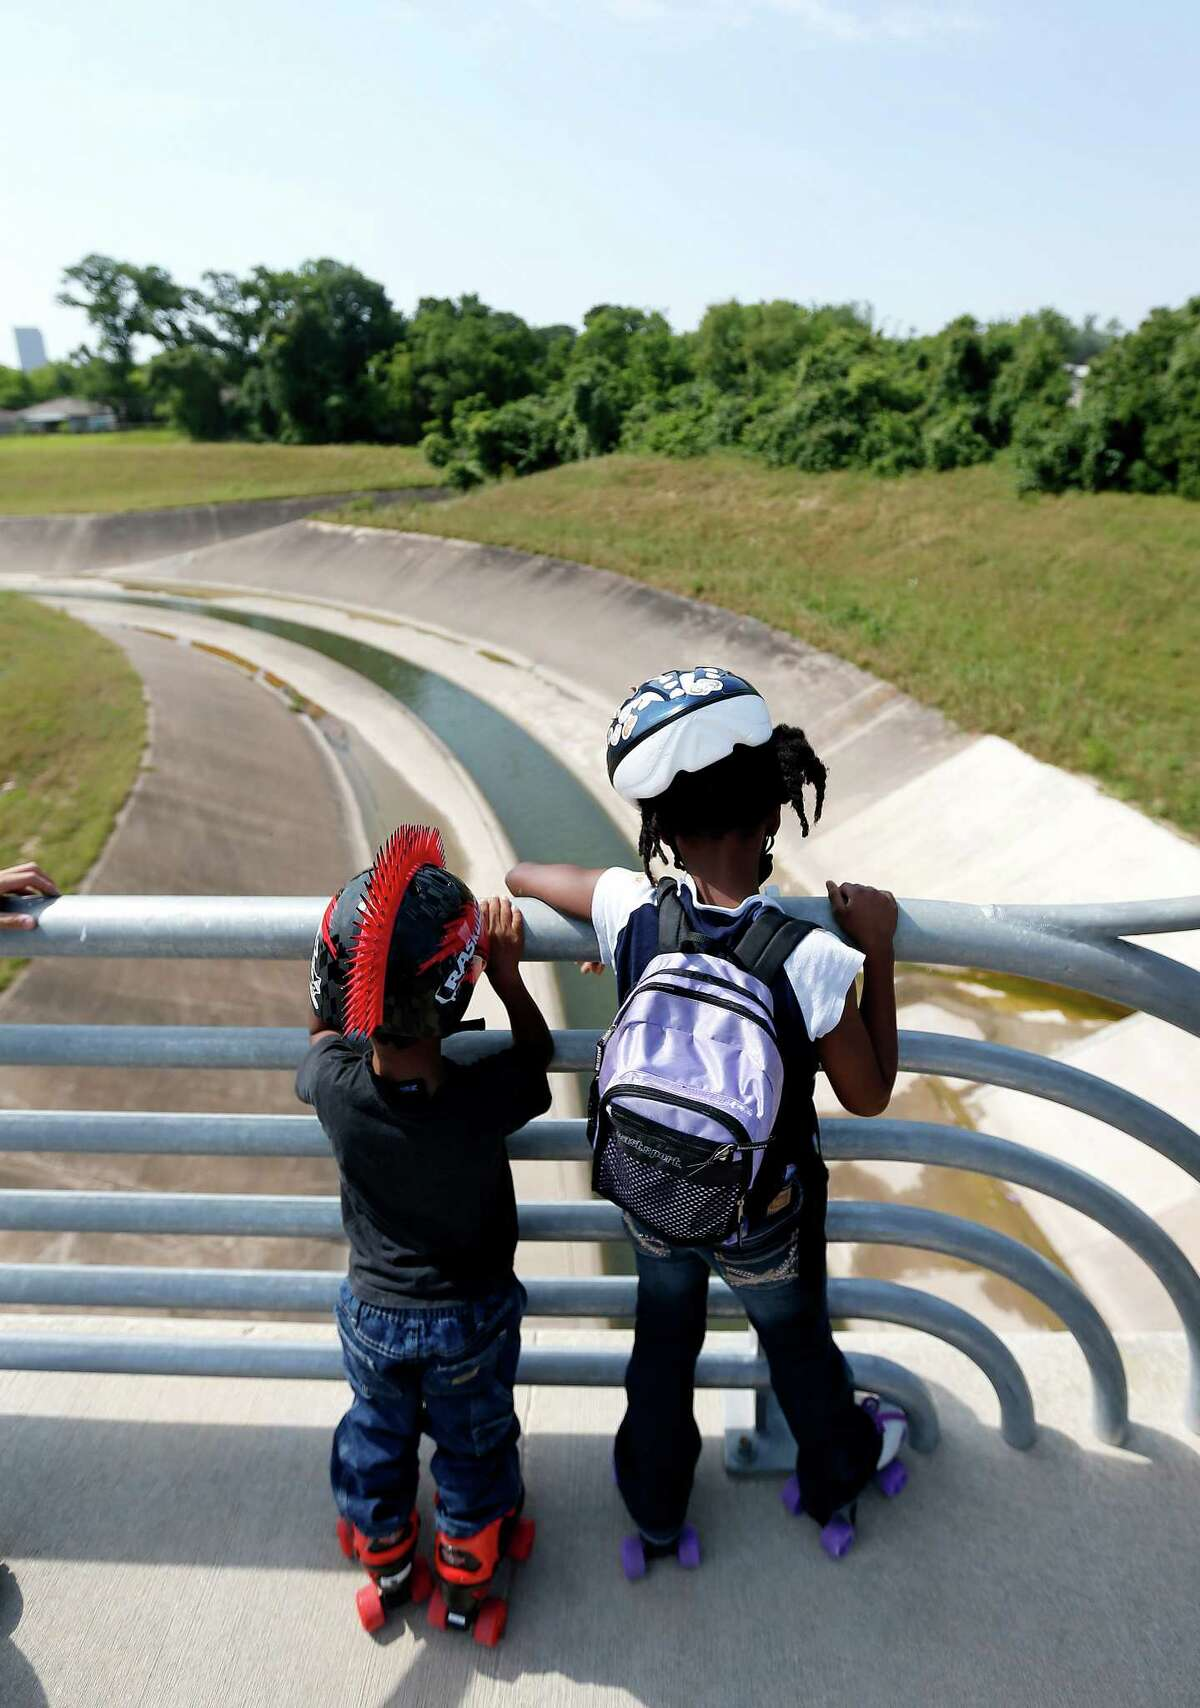 Sion White, 5, and Yuriko White, 9, watch the waters flow in the White Oak Bayou during Bridge Bash ceremonies at the new White Oak Bayou greenway bridge and trails, West of Heights Trail on Saturday, May 2, 2015, in Houston. The Houston Parks Board, Memorial Heights Redevelopment Authority and Tax Increment Reinvestment Zone (TIRZ) 5, and the City of Houston will host a âÄúBridge BashâÄù to celebrate the completion of a new segment of White Oak Bayou Greenway.The new bridge replaces the former MKT Railroad Bridge, also known as the âÄúBBQ BridgeâÄù between Shepherd Drive and Moy Street.